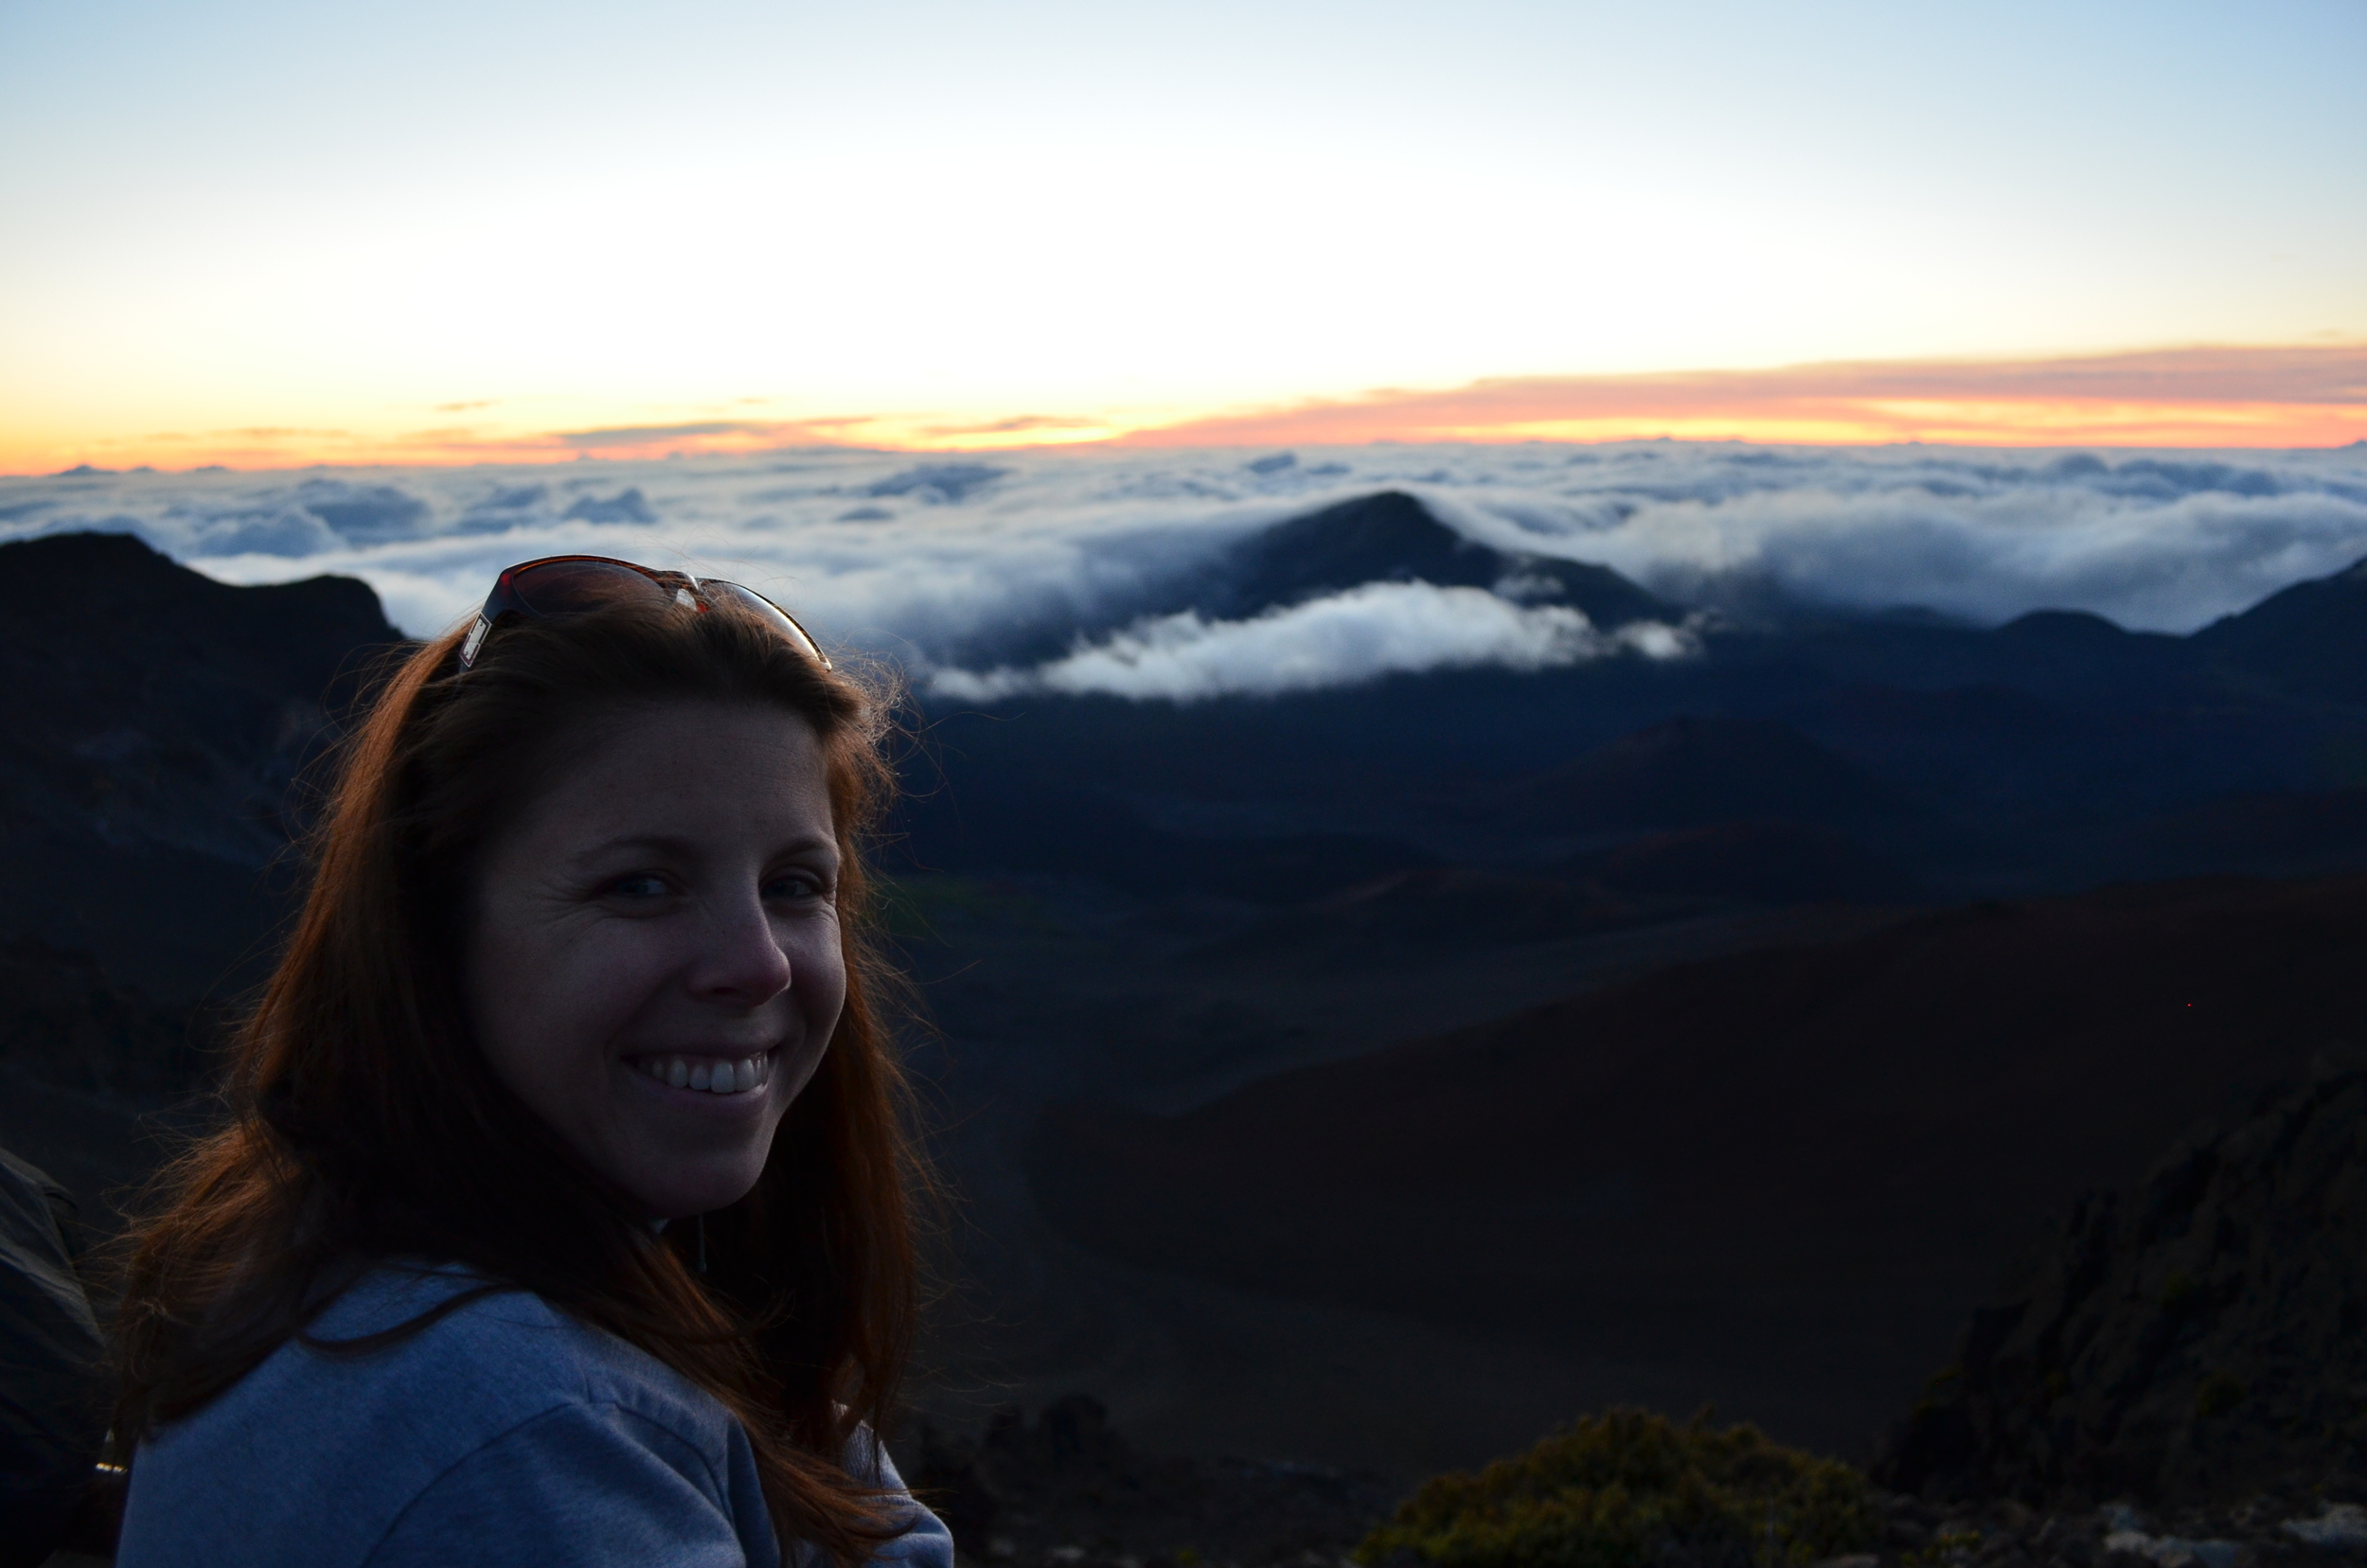 Wifey on honeymoon waiting on sunrise at Haleakalā National Park, Maui, Hawaii   Nikon D5100 DSLR Camera with 18-55mm f/3.5-5.6 Auto Focus-S Nikkor Zoom Lens